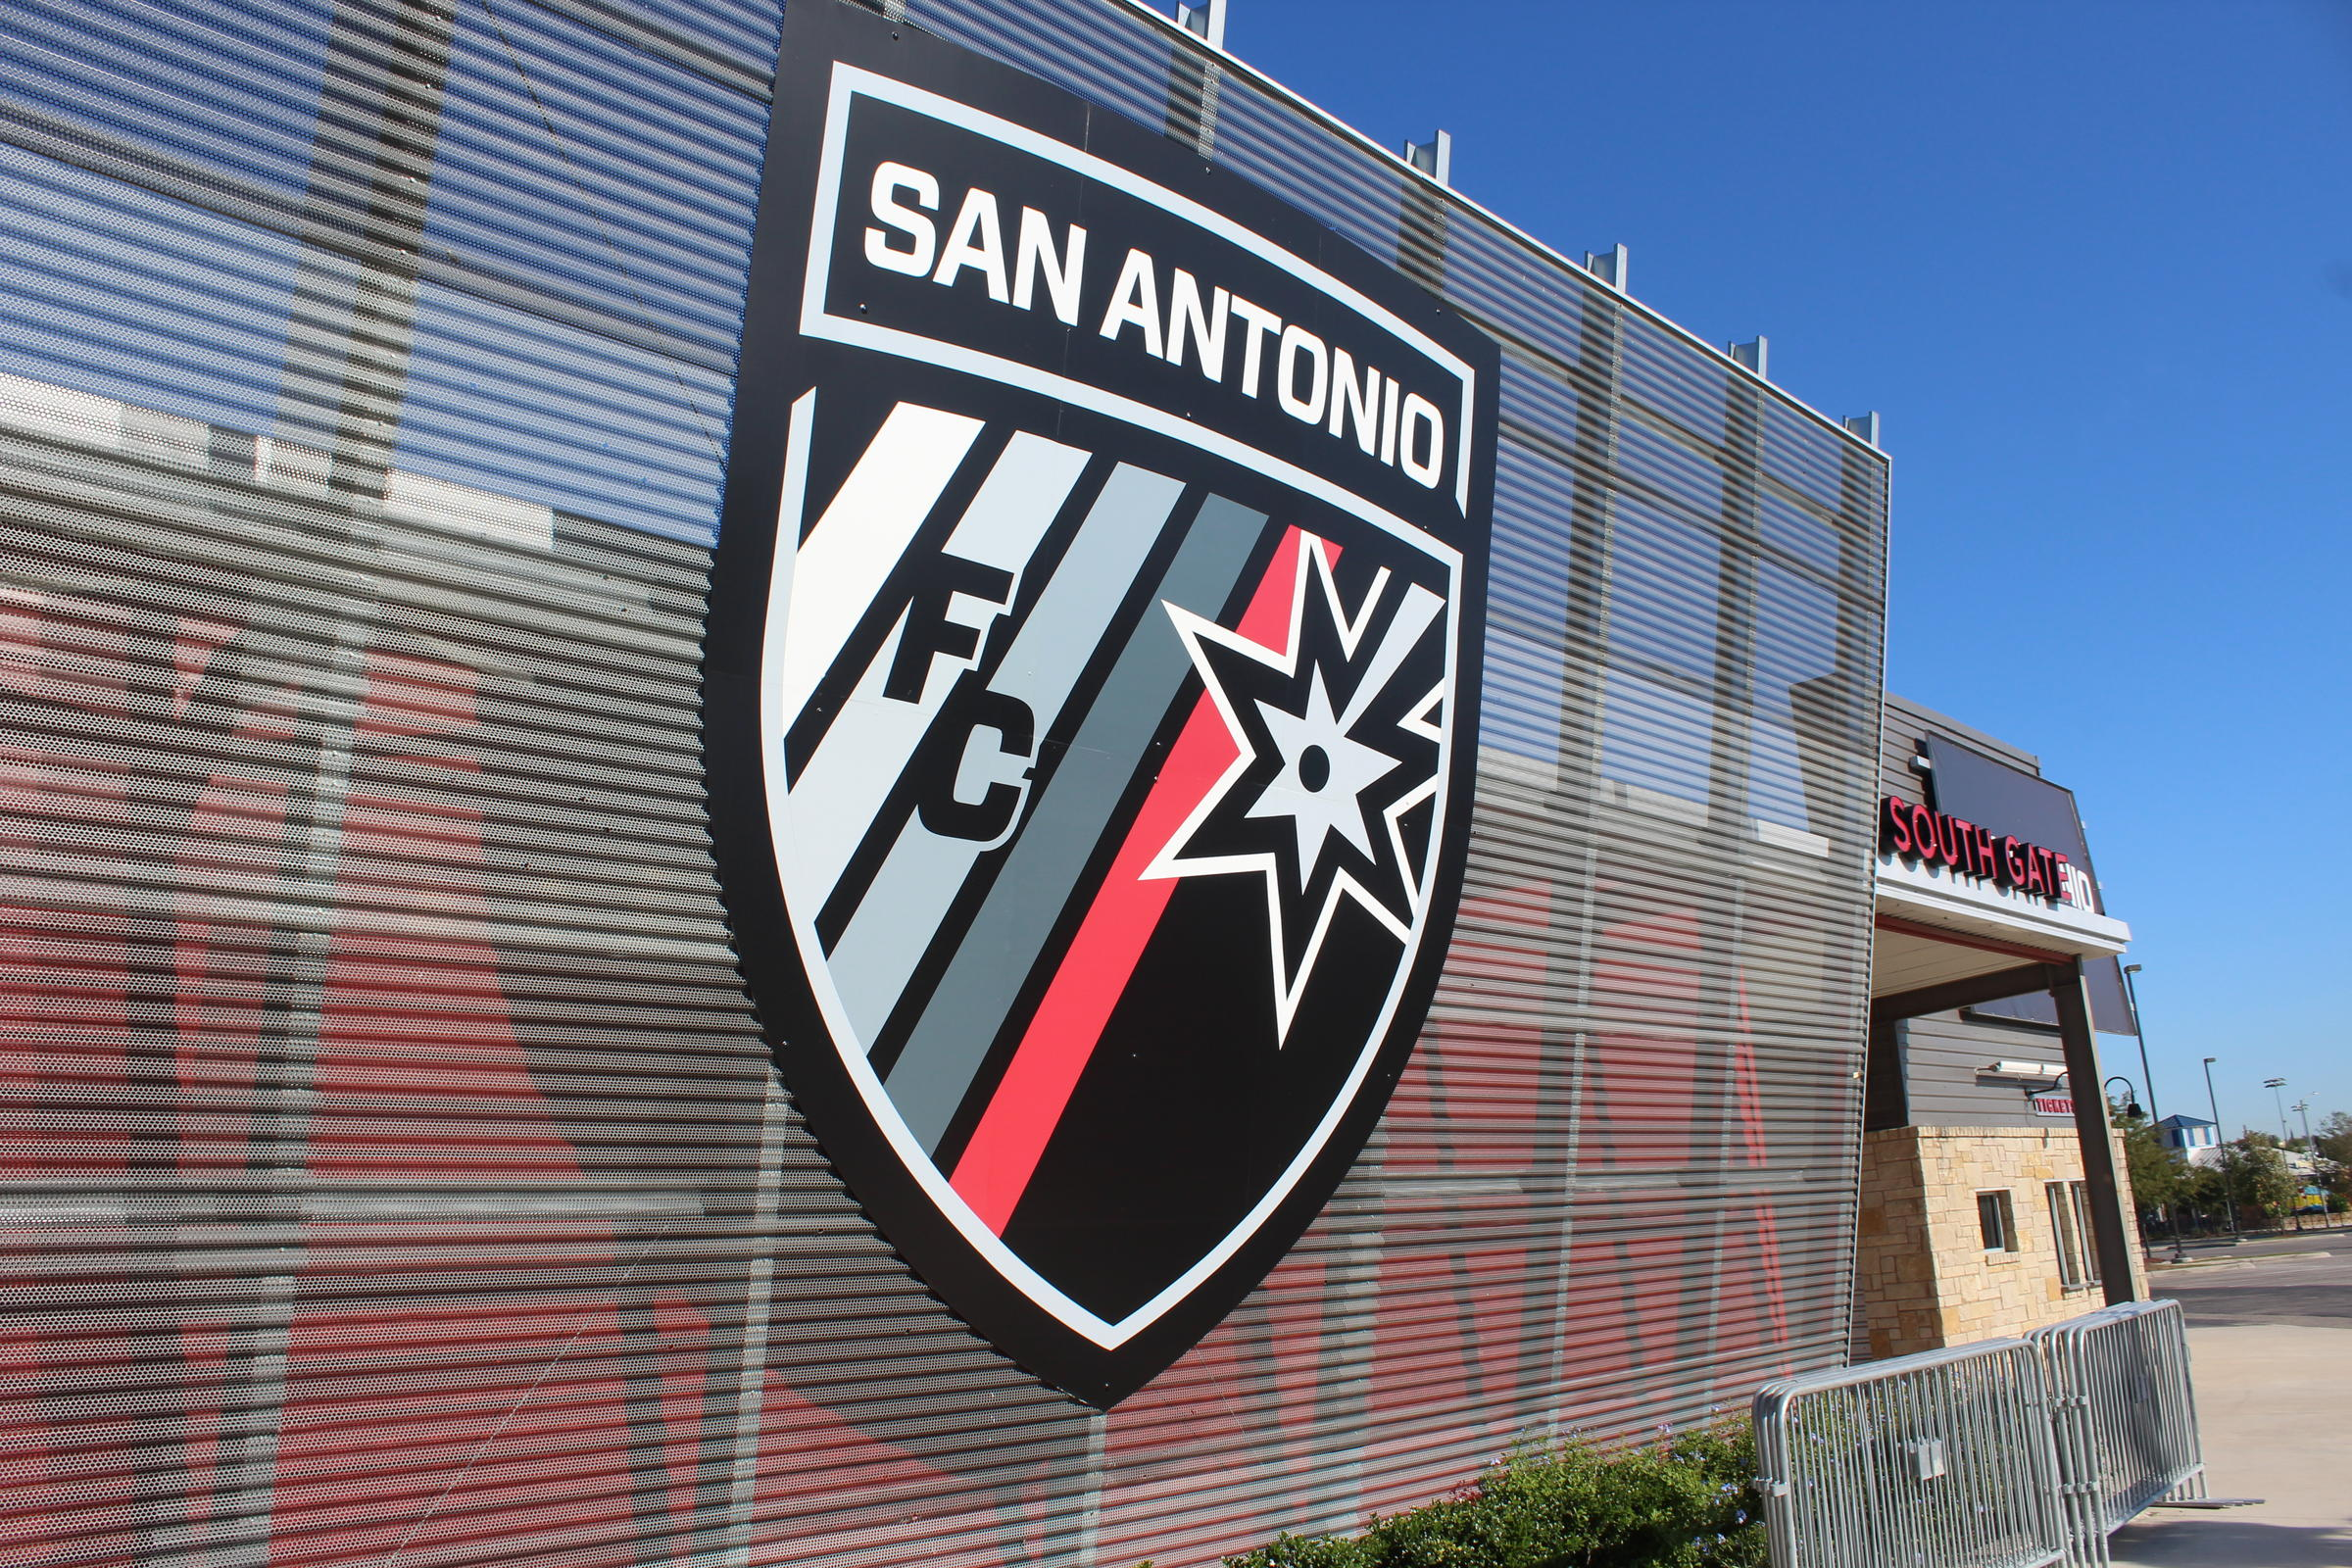 Moving A Major League Soccer Team To Austin Could Disrupt San